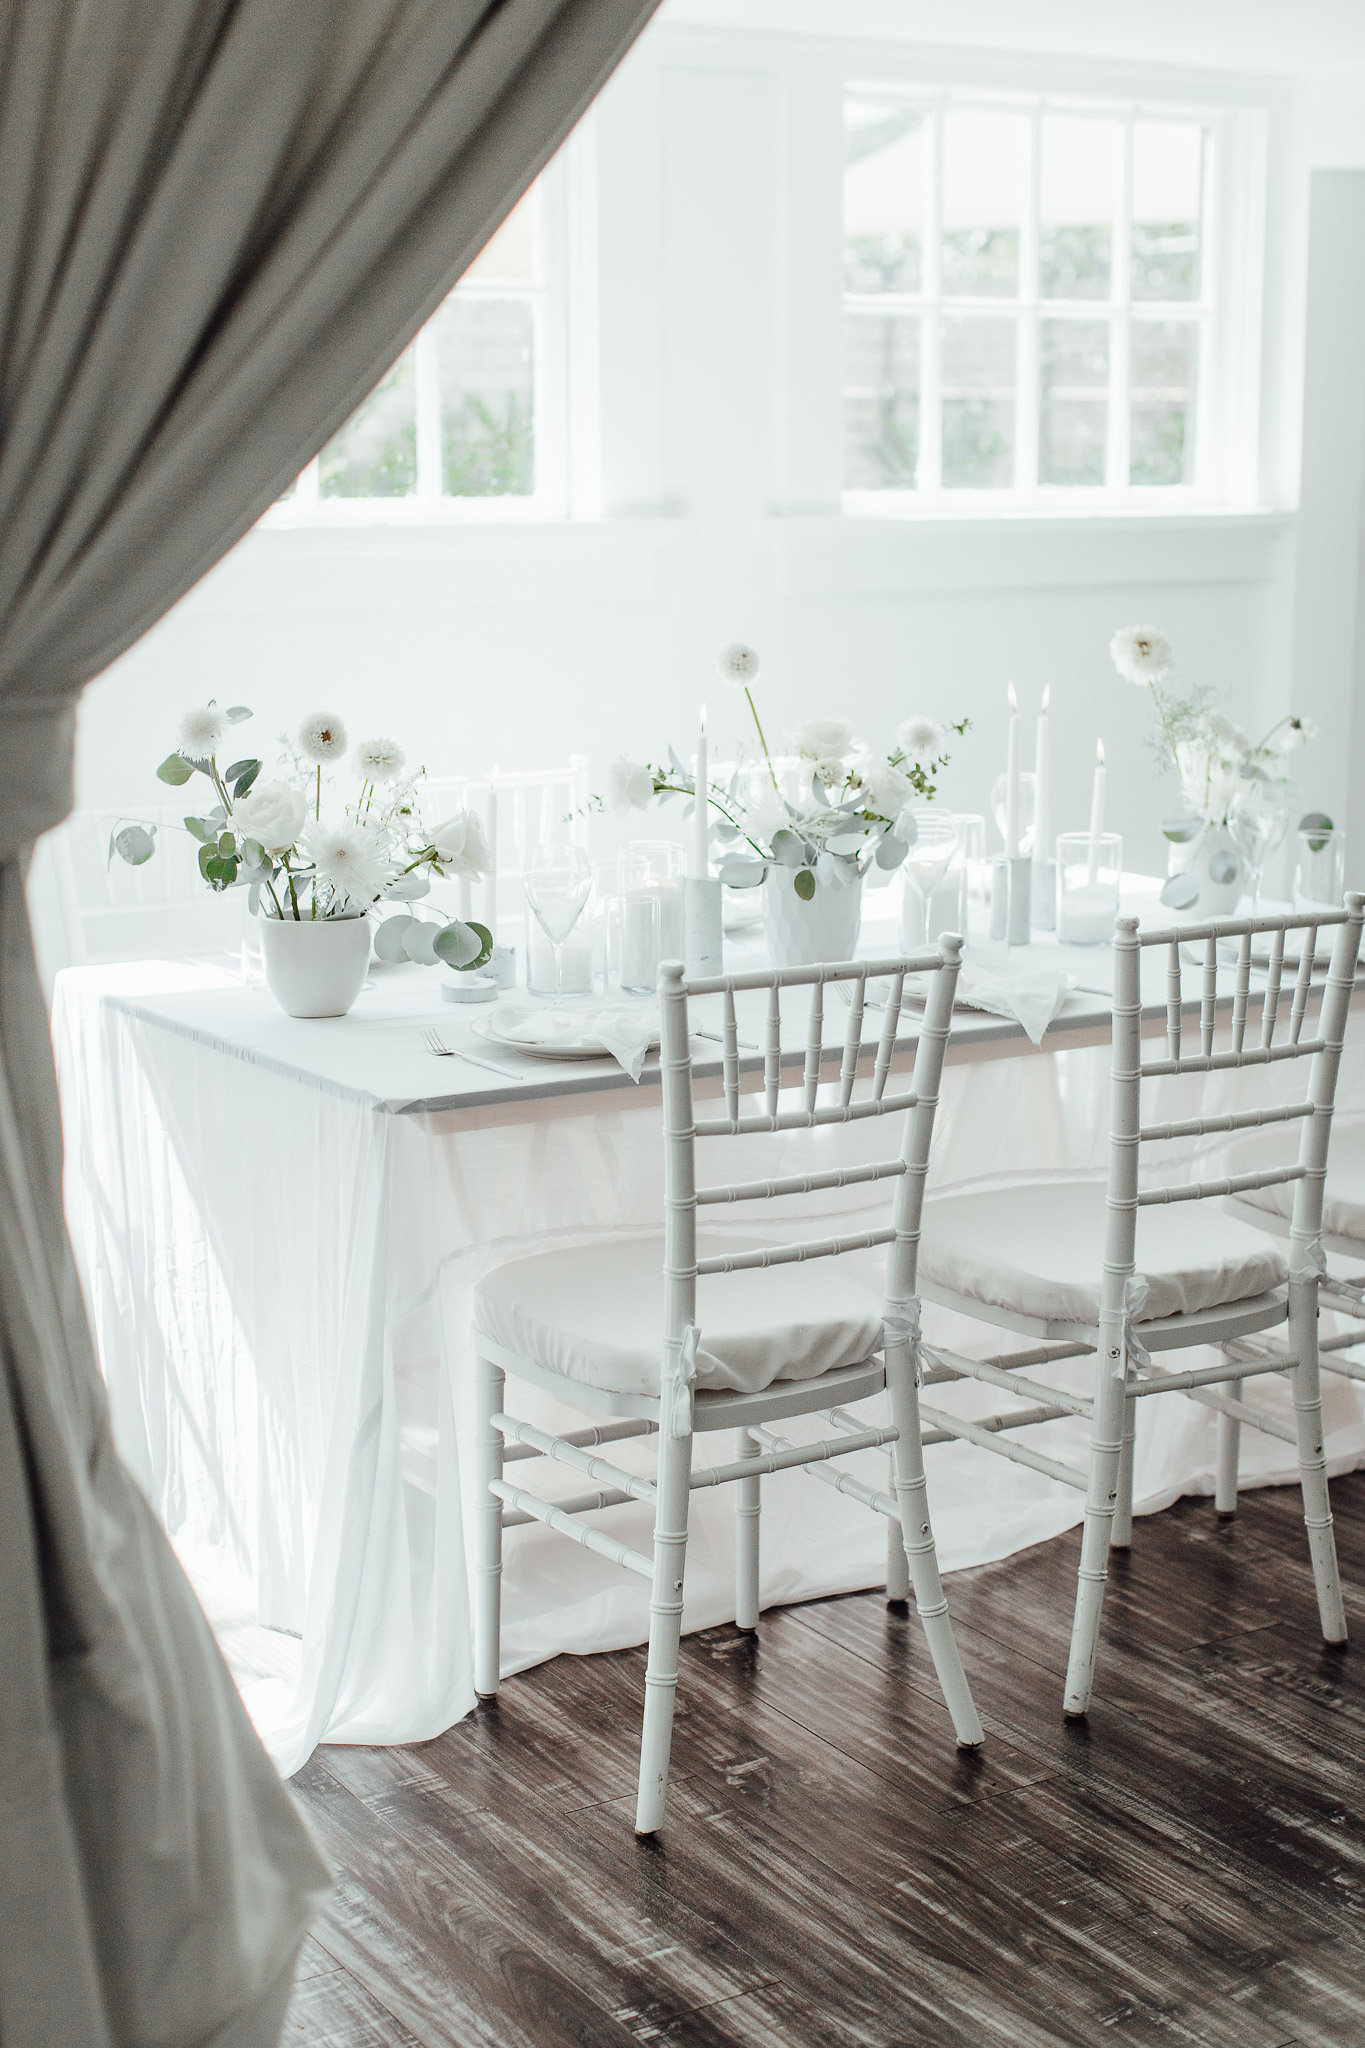 A New Winter Mix: Monochromatic White Wedding Styled Shoot Tablescape Inspo